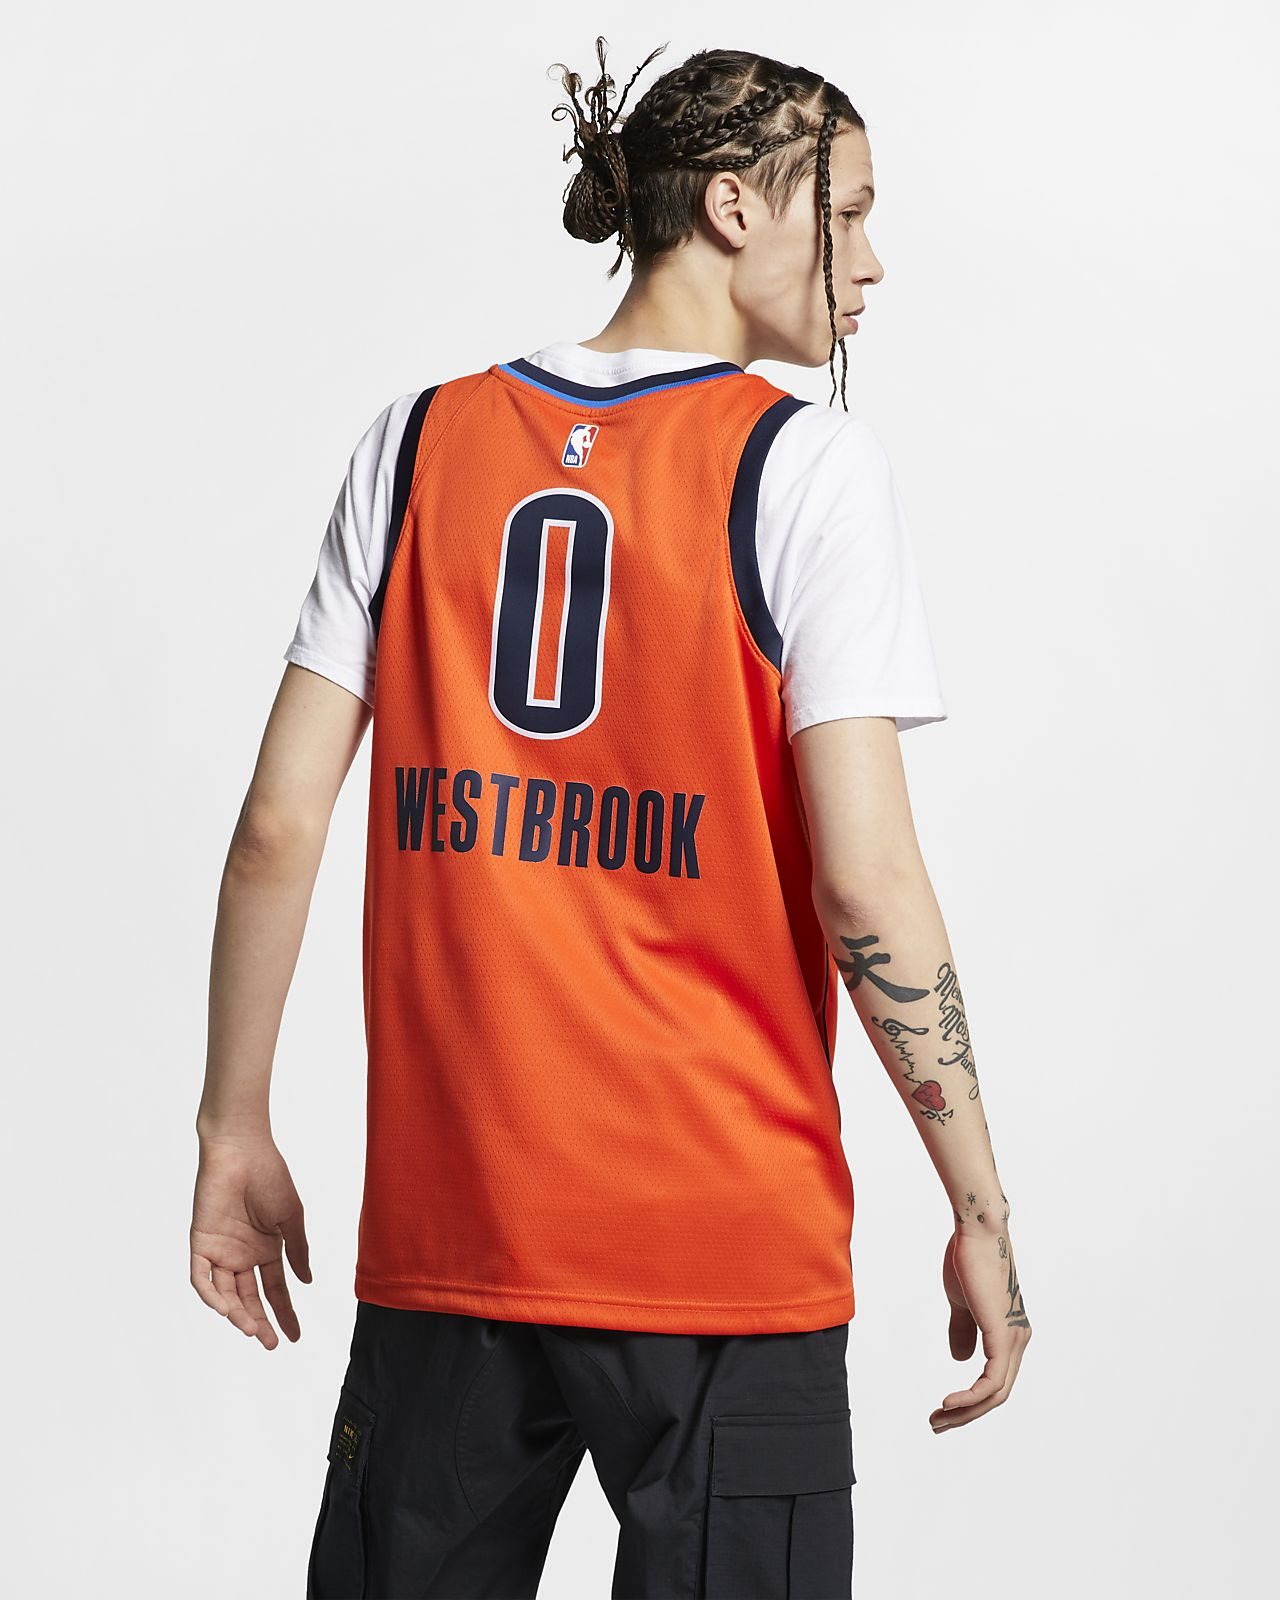 ca933a039d3 ... Russell Westbrook Earned City Edition Swingman (Oklahoma City Thunder) Men s  Nike NBA Connected Jersey